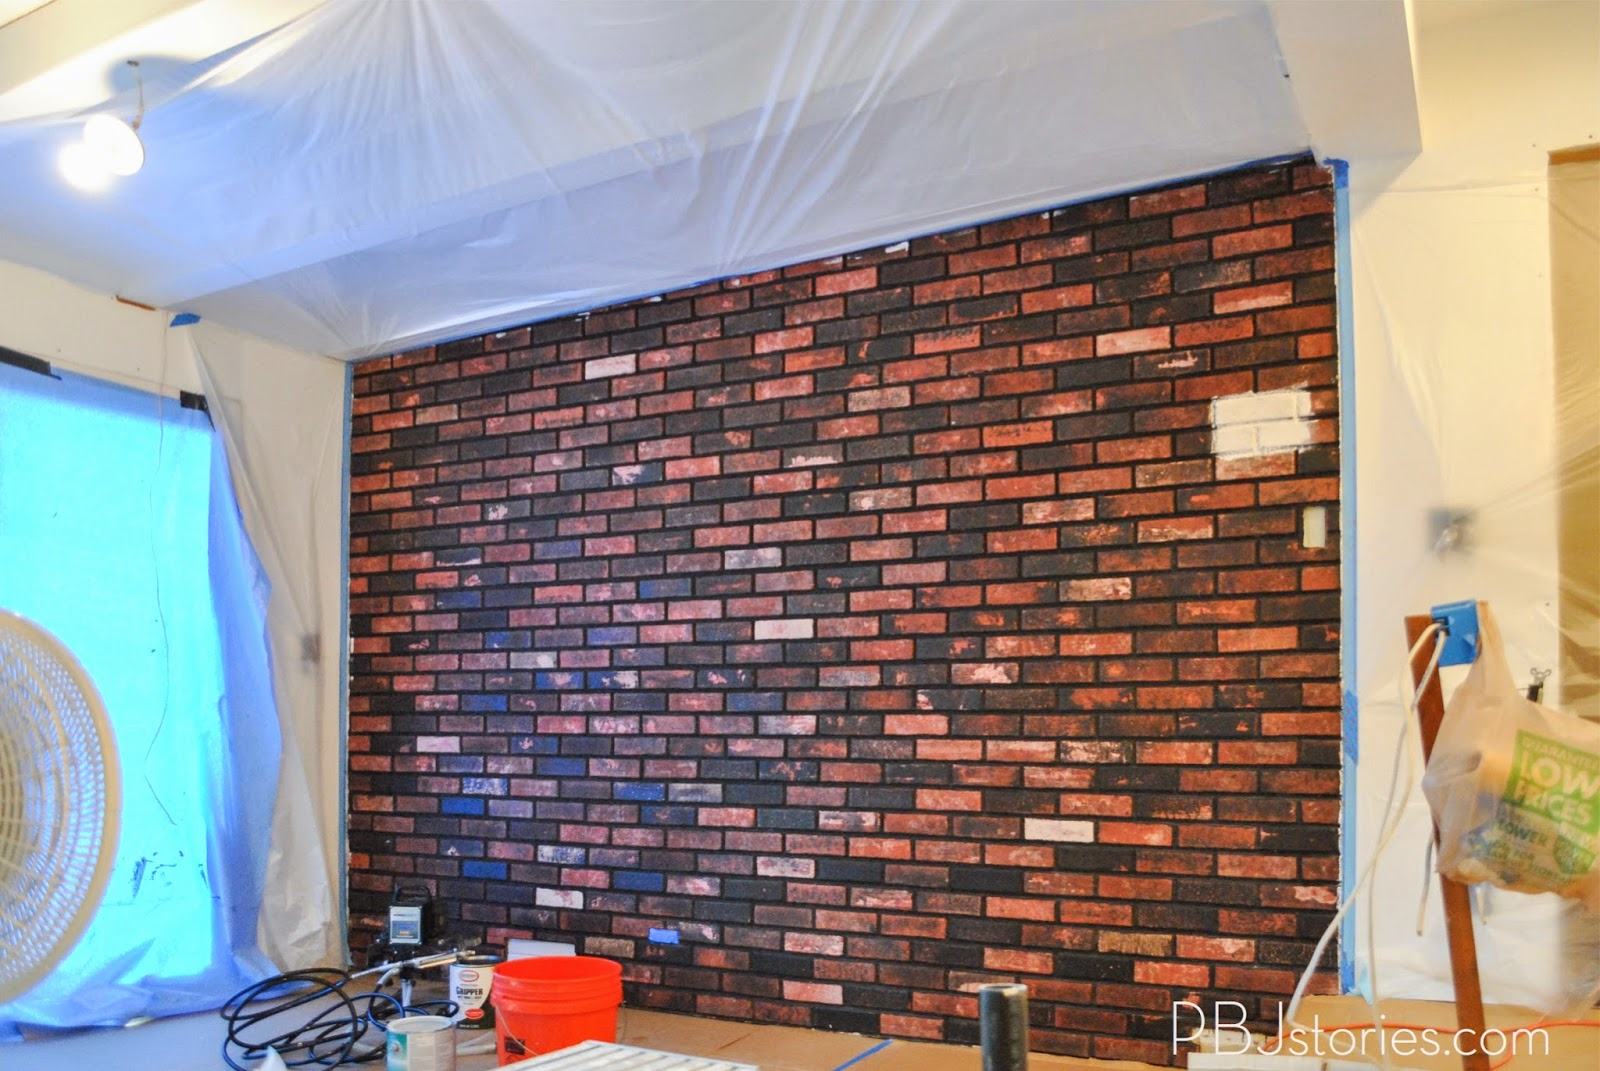 PBJstories How to Paint an Interior Brick Wall PBJreno